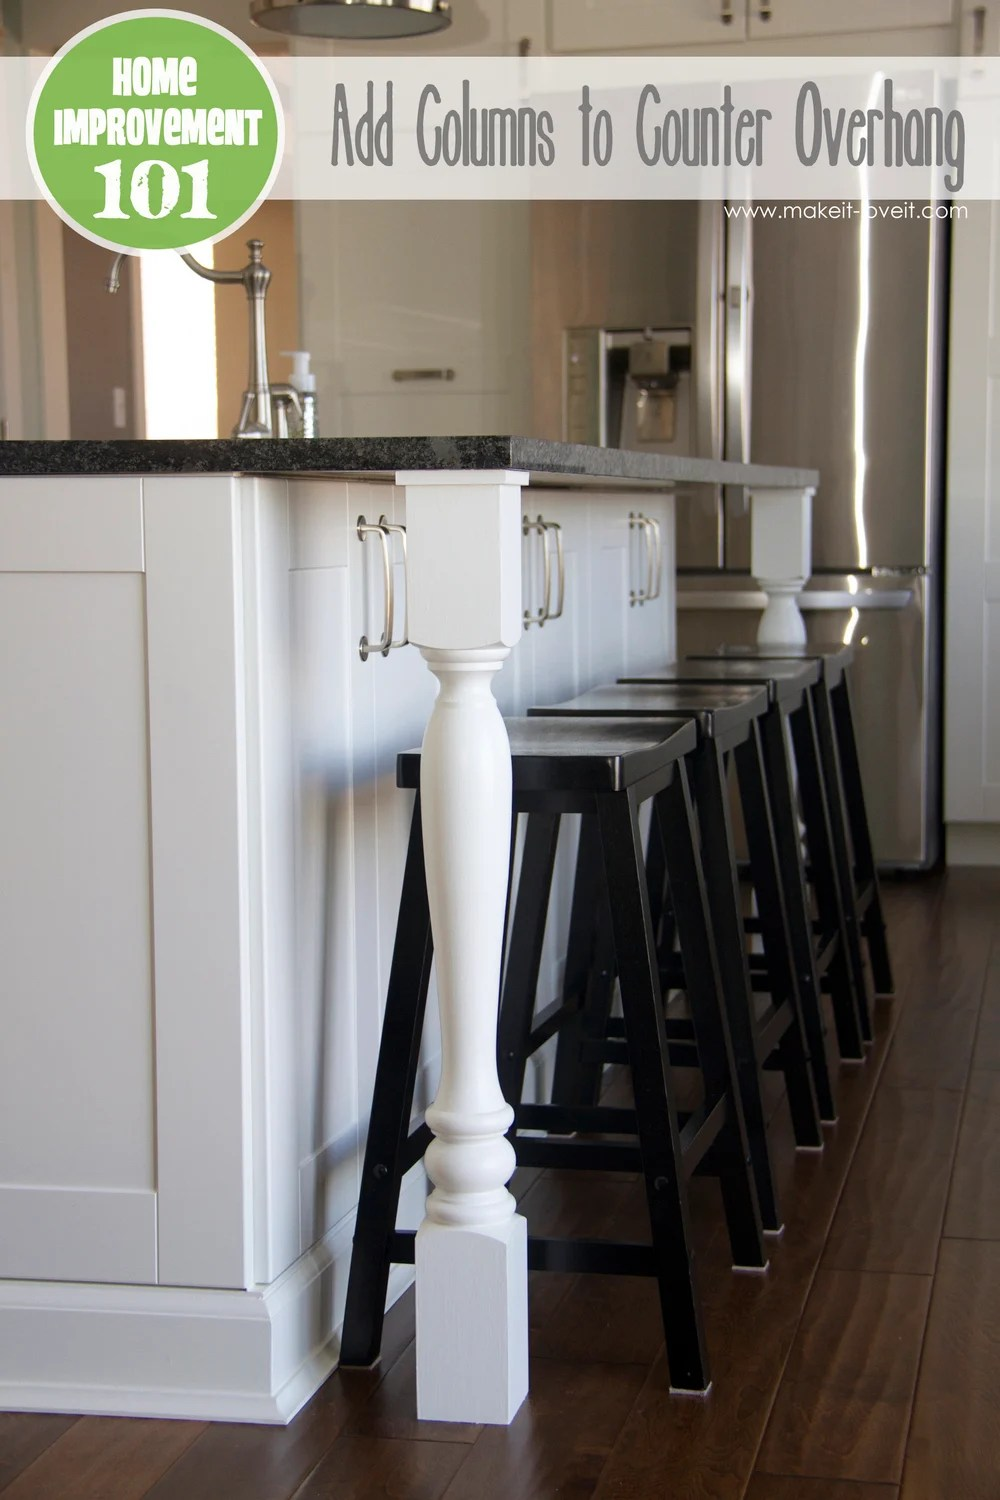 kitchen counter overhang yellow mat home improvement adding column supports to plus finished photos